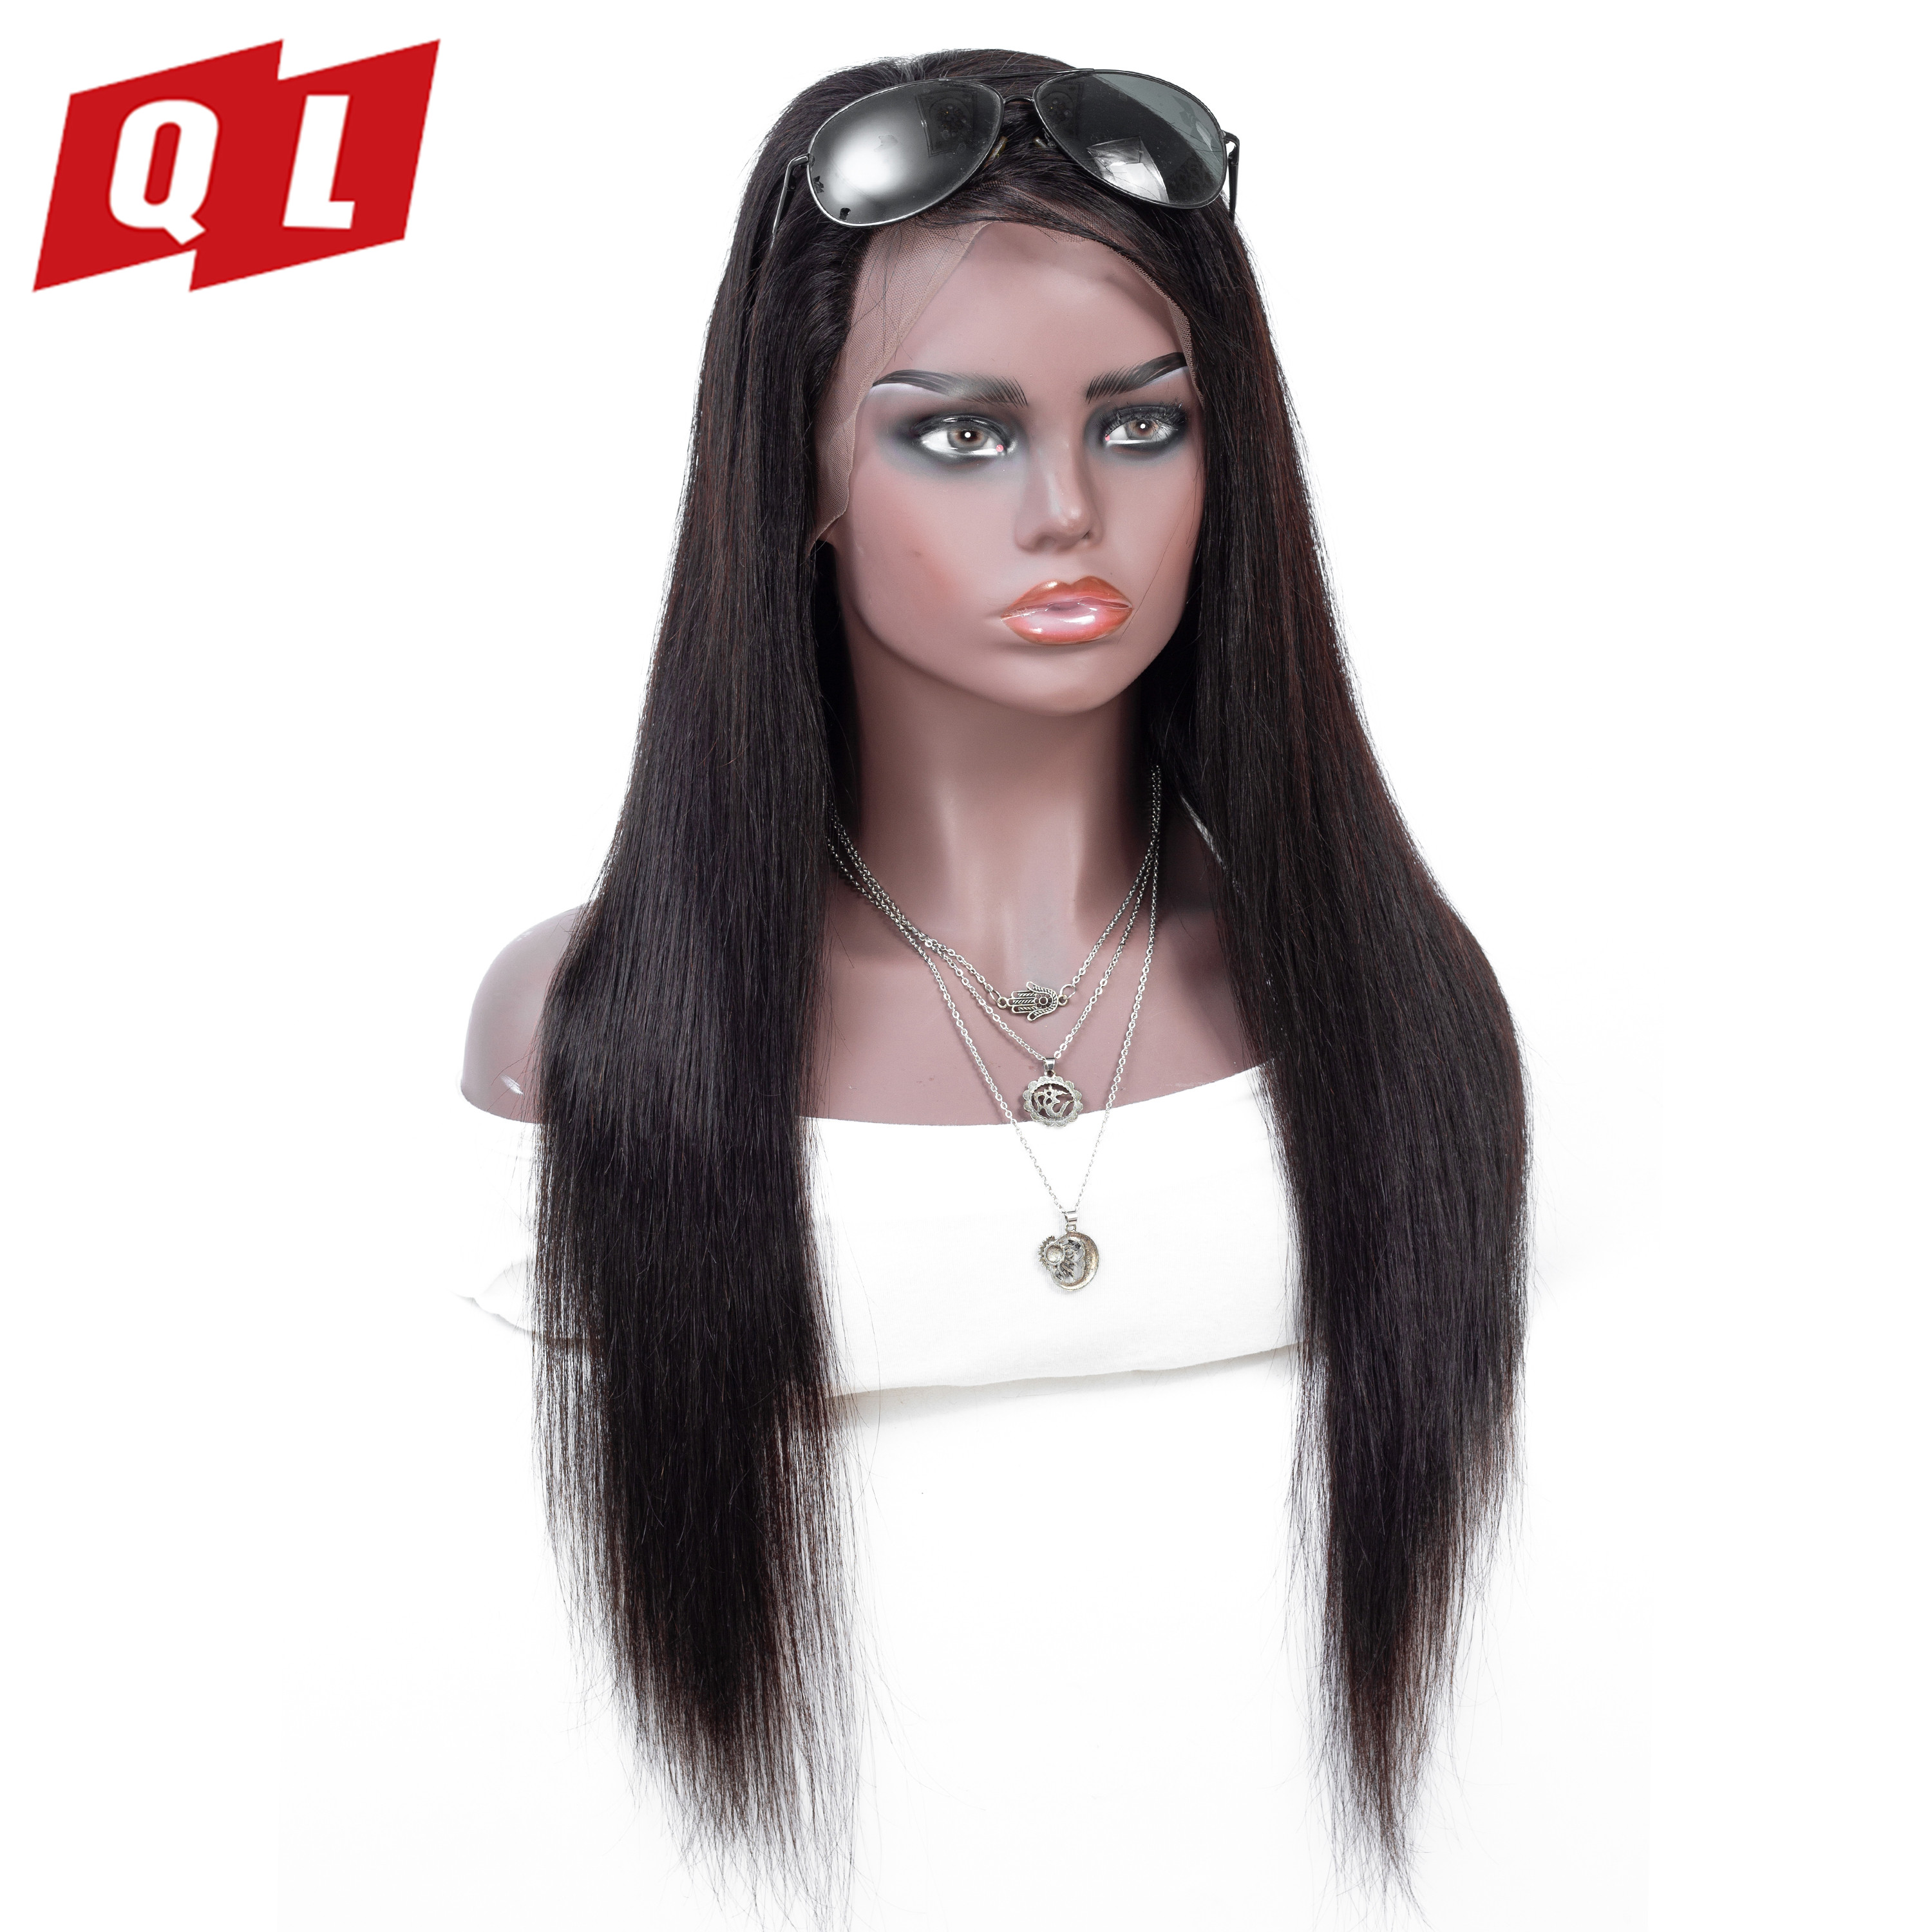 QLOVE HAIR 13 4 Peruvian Remy Lace Front Wig With Baby Hair Straight Human Hair Wigs